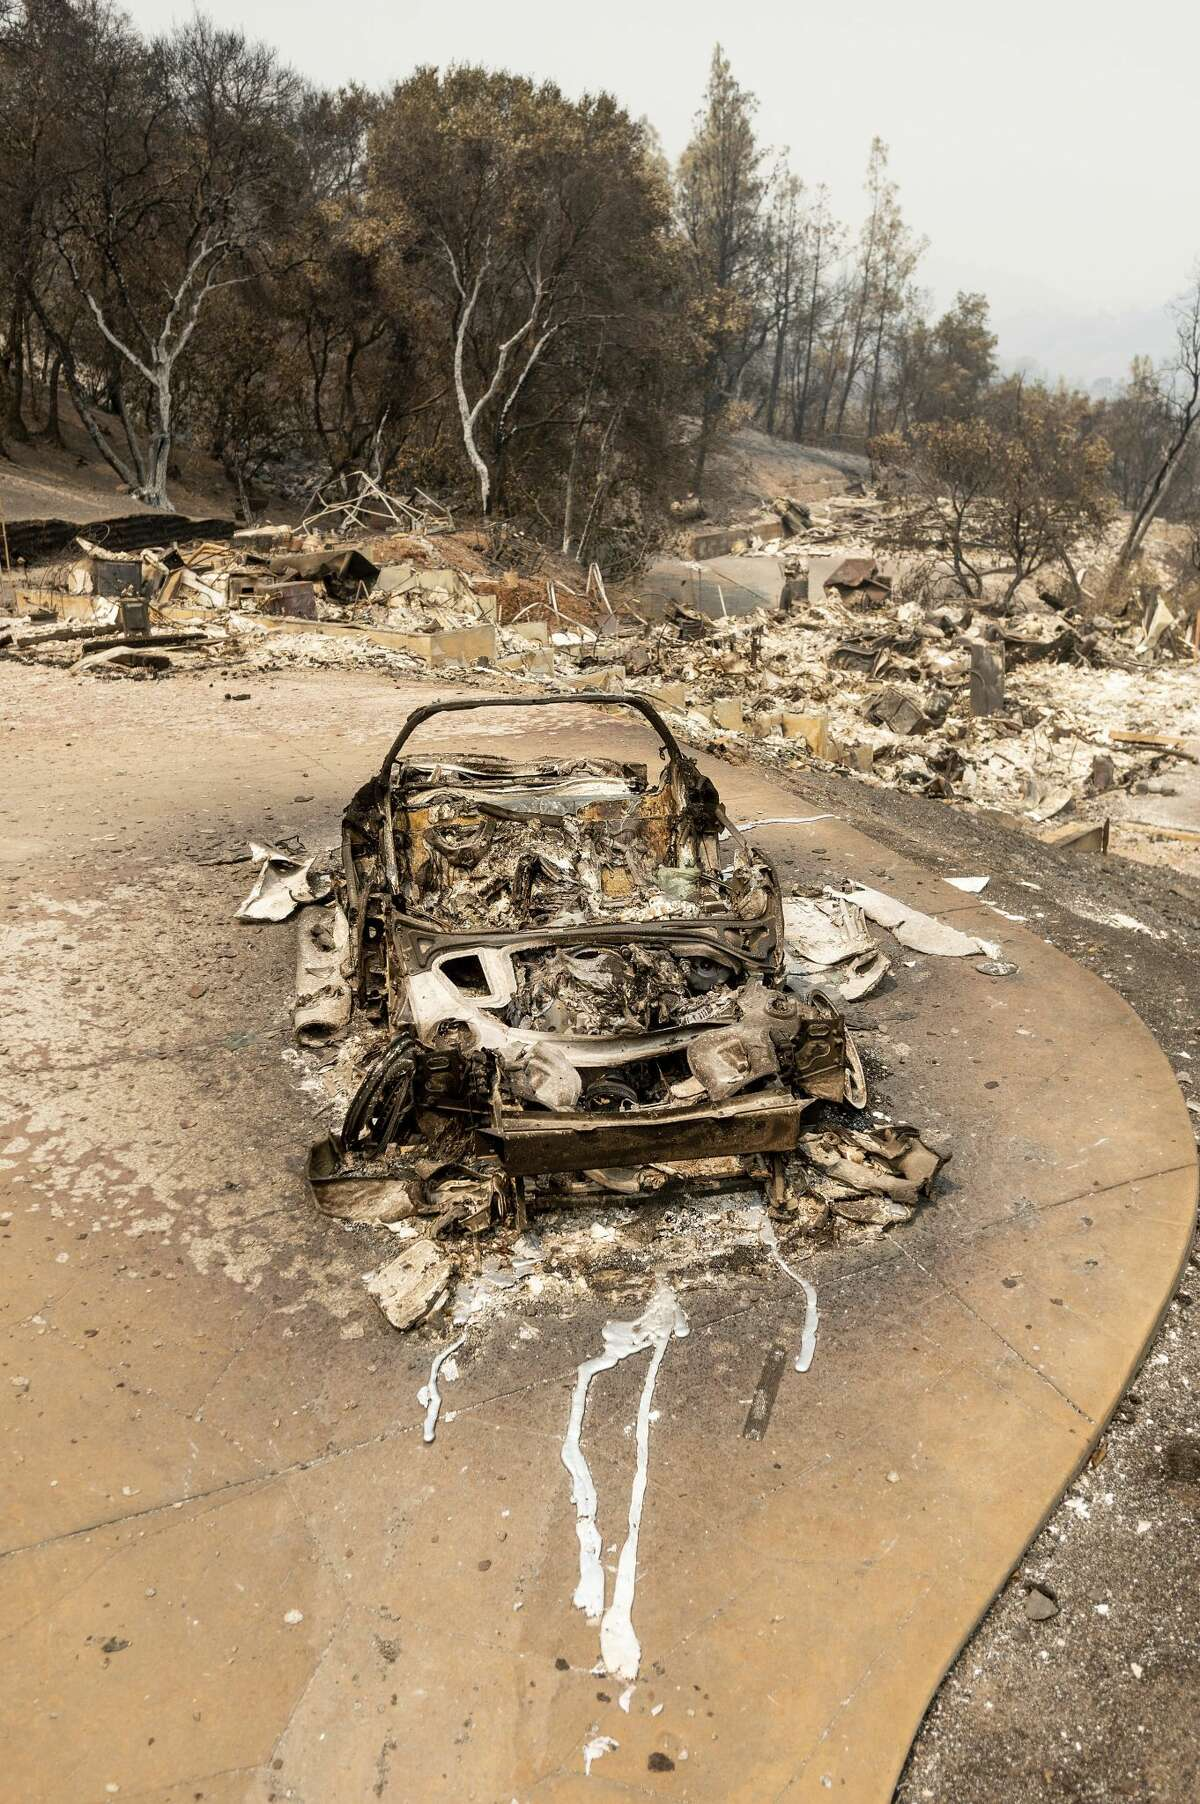 A scorched vehicle rests in a driveway following the LNU Lightning Complex fires in Napa County, Calif. on Monday, Aug. 24, 2020.